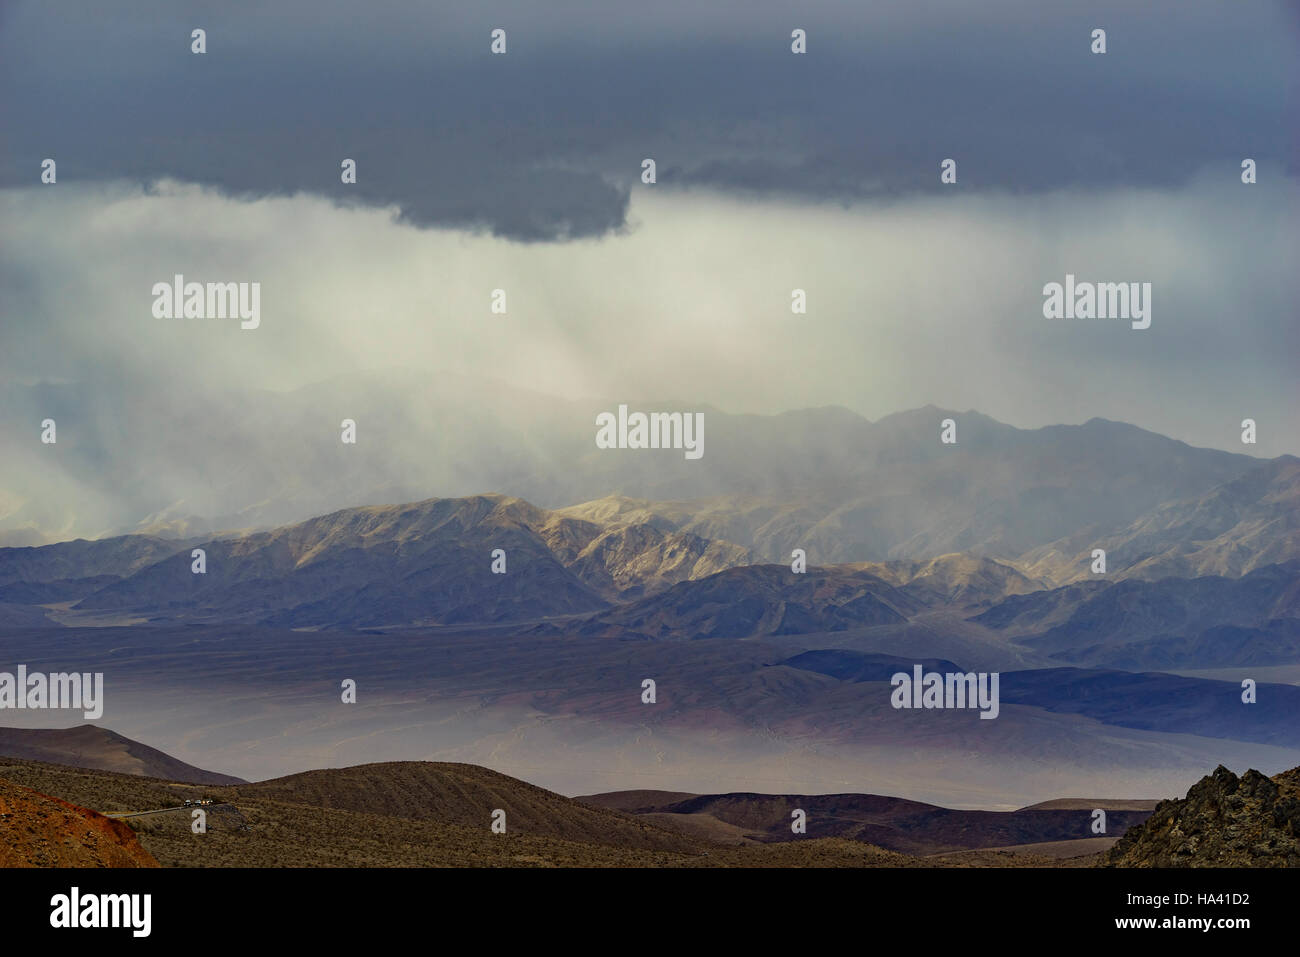 Beautiful sun ray while raining over mountain at Death Valley National Park - Stock Image